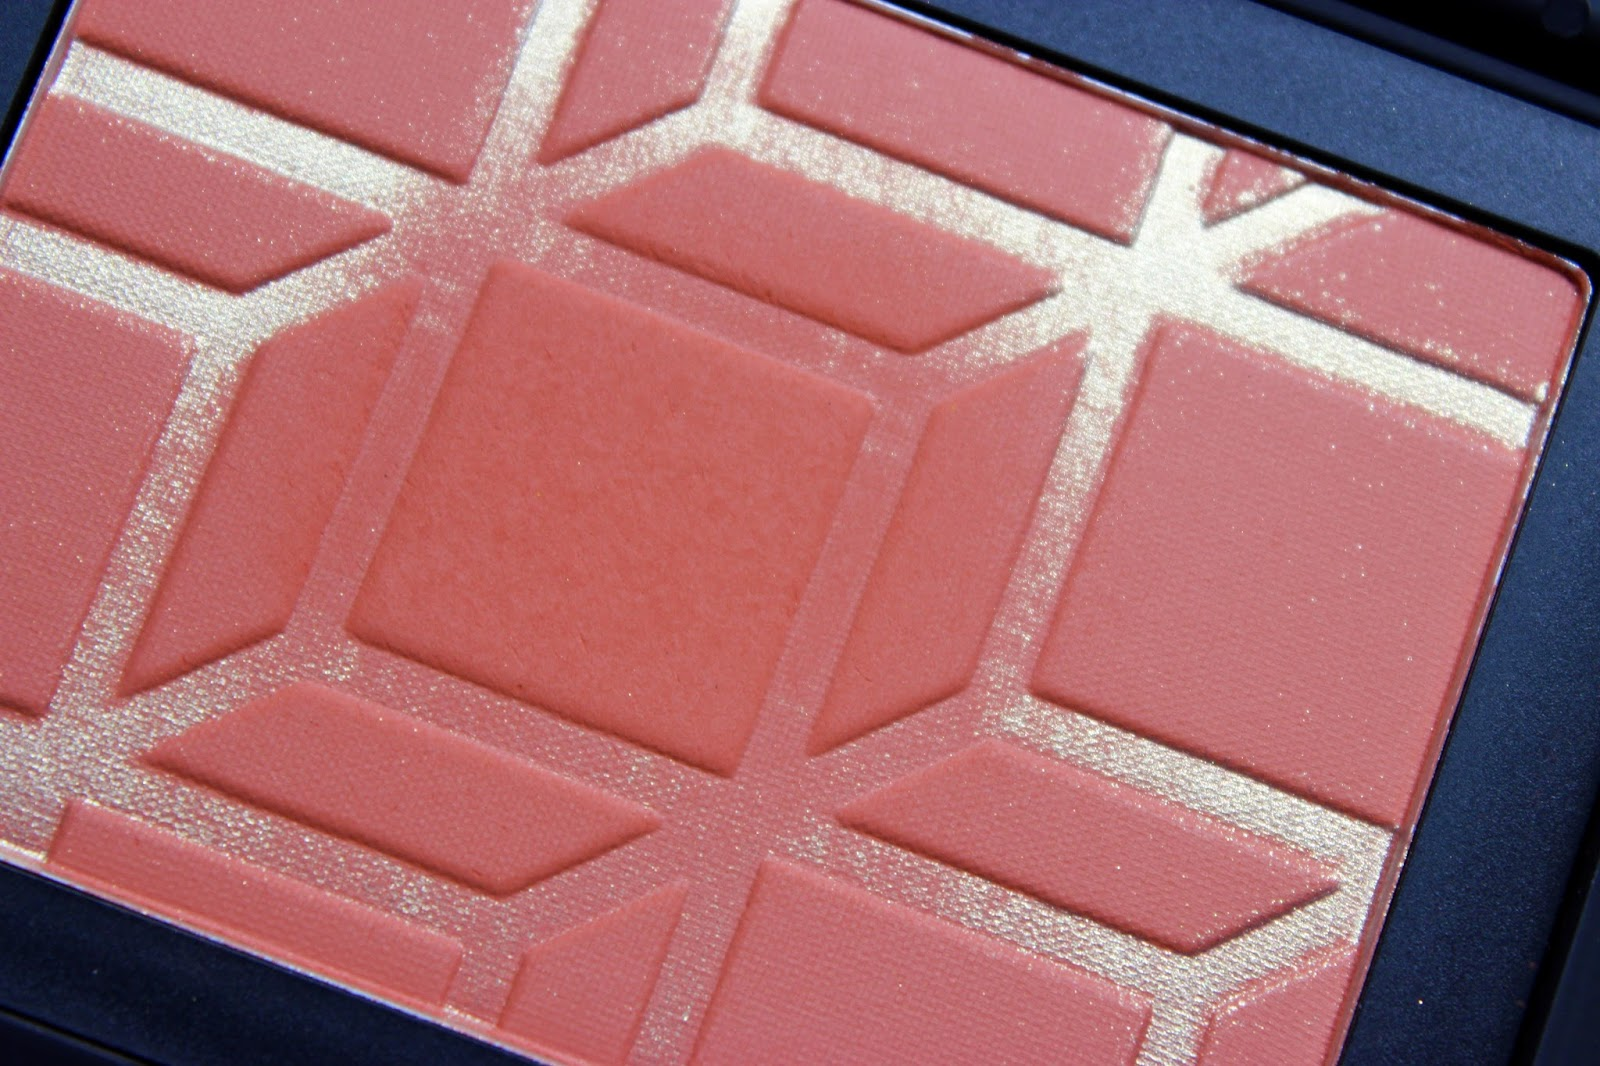 NARS Rotonde Blush IMATS Discoveries Of Self Blog